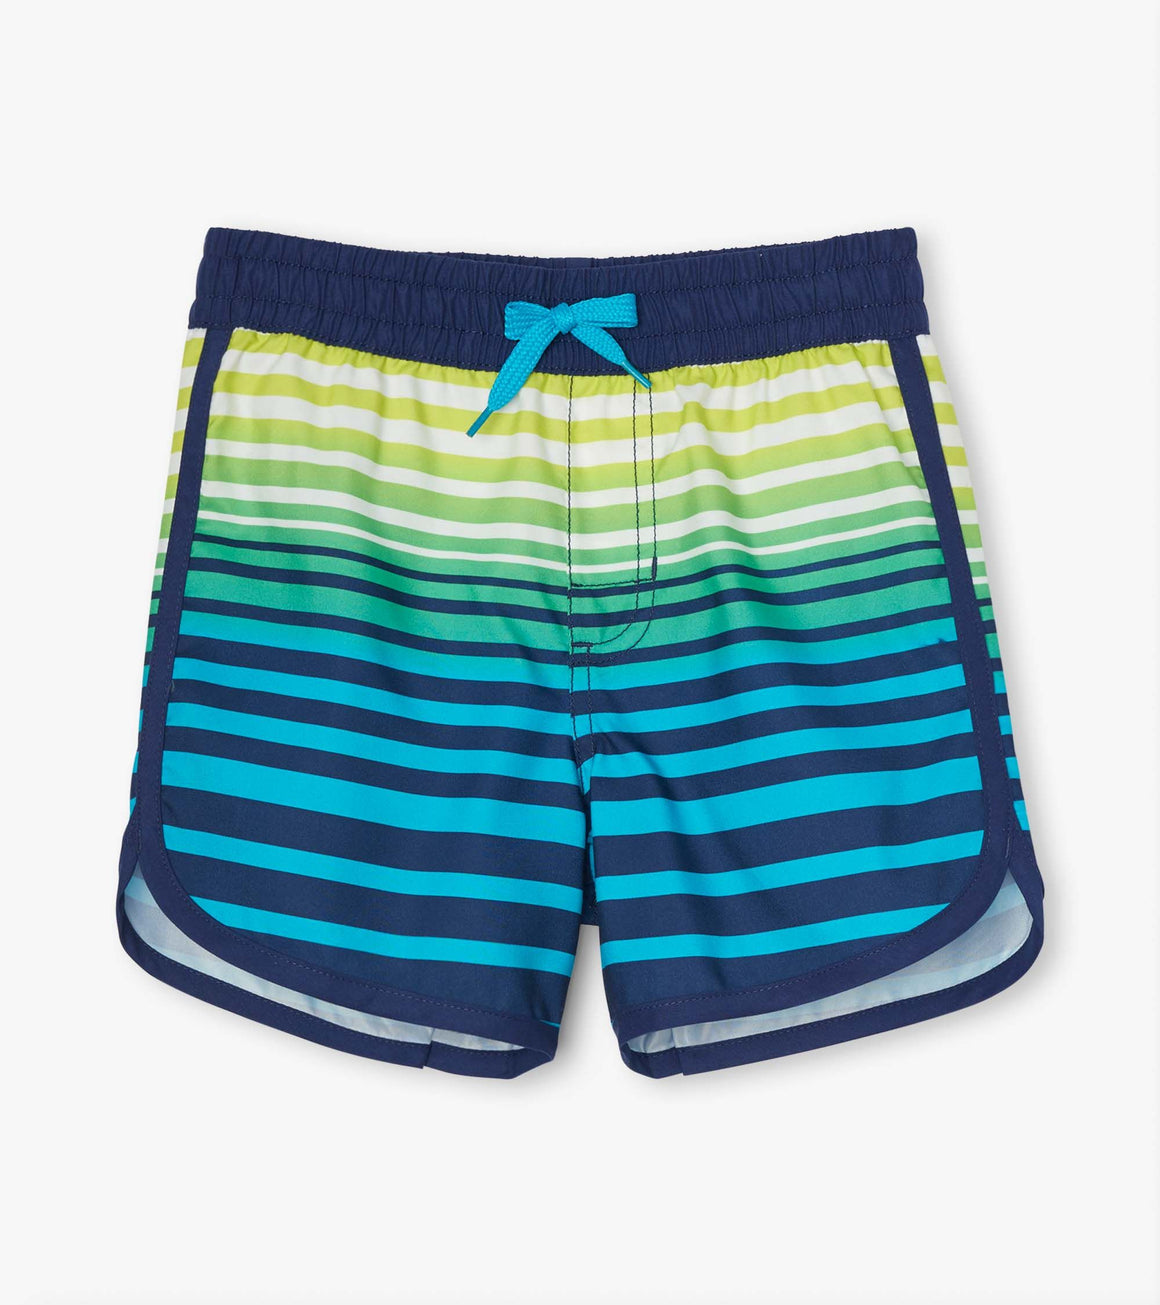 Boys UPF50+ lined quick-dry cool stripes swim shorts. Navy, lime green, aqua to blue ombre print.